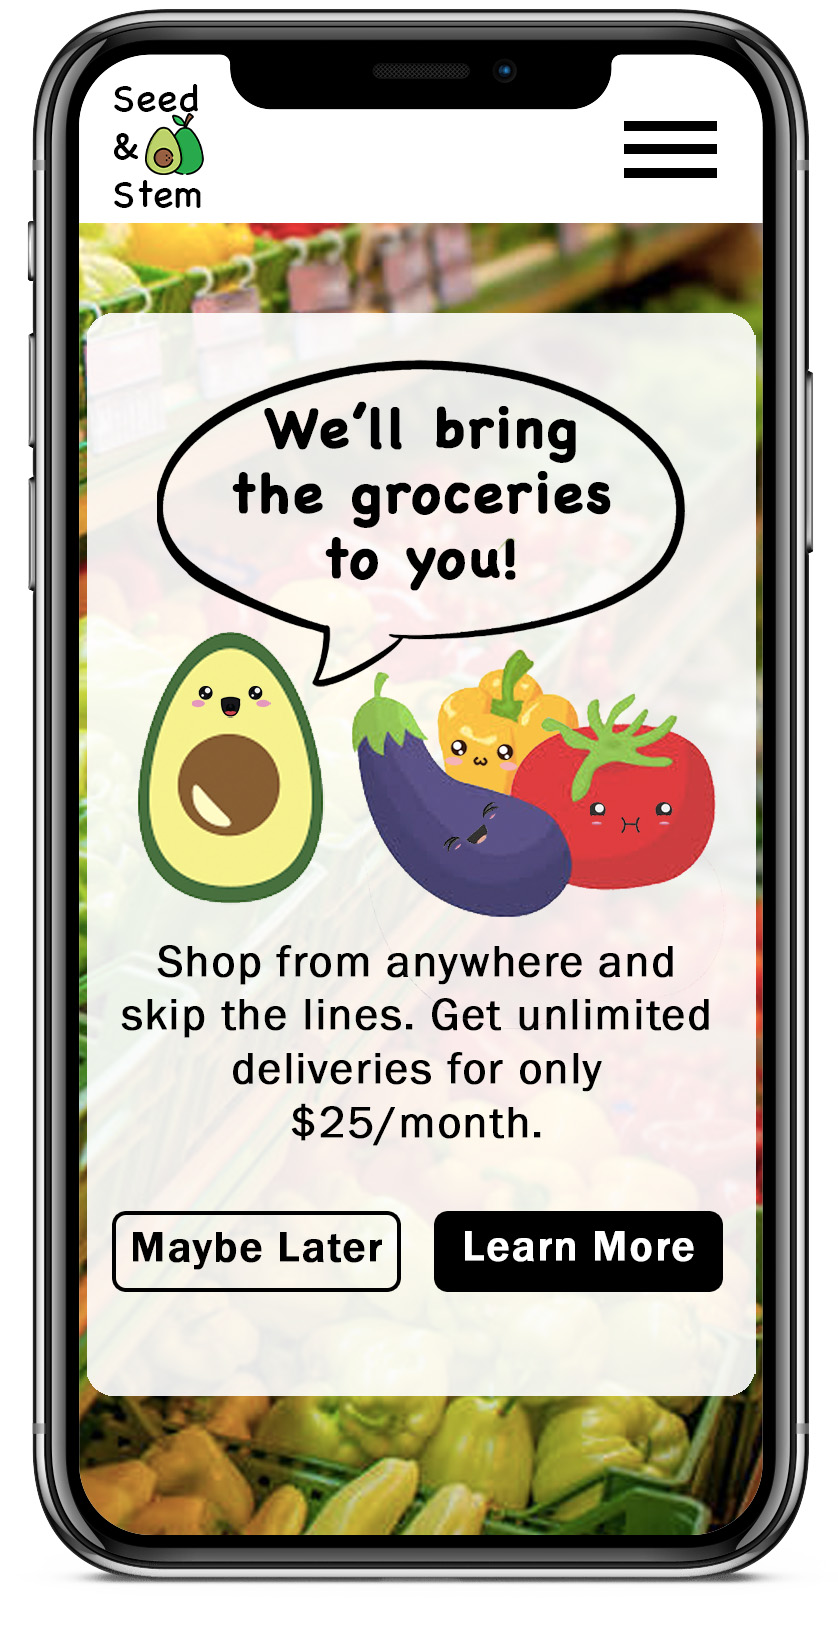 Headline: We'll bring the groceries to you!           Body: Shop from anywhere and skip the lines. Get unlimited deliveries for only $25/month.           Buttons: Learn More, Maybe Later